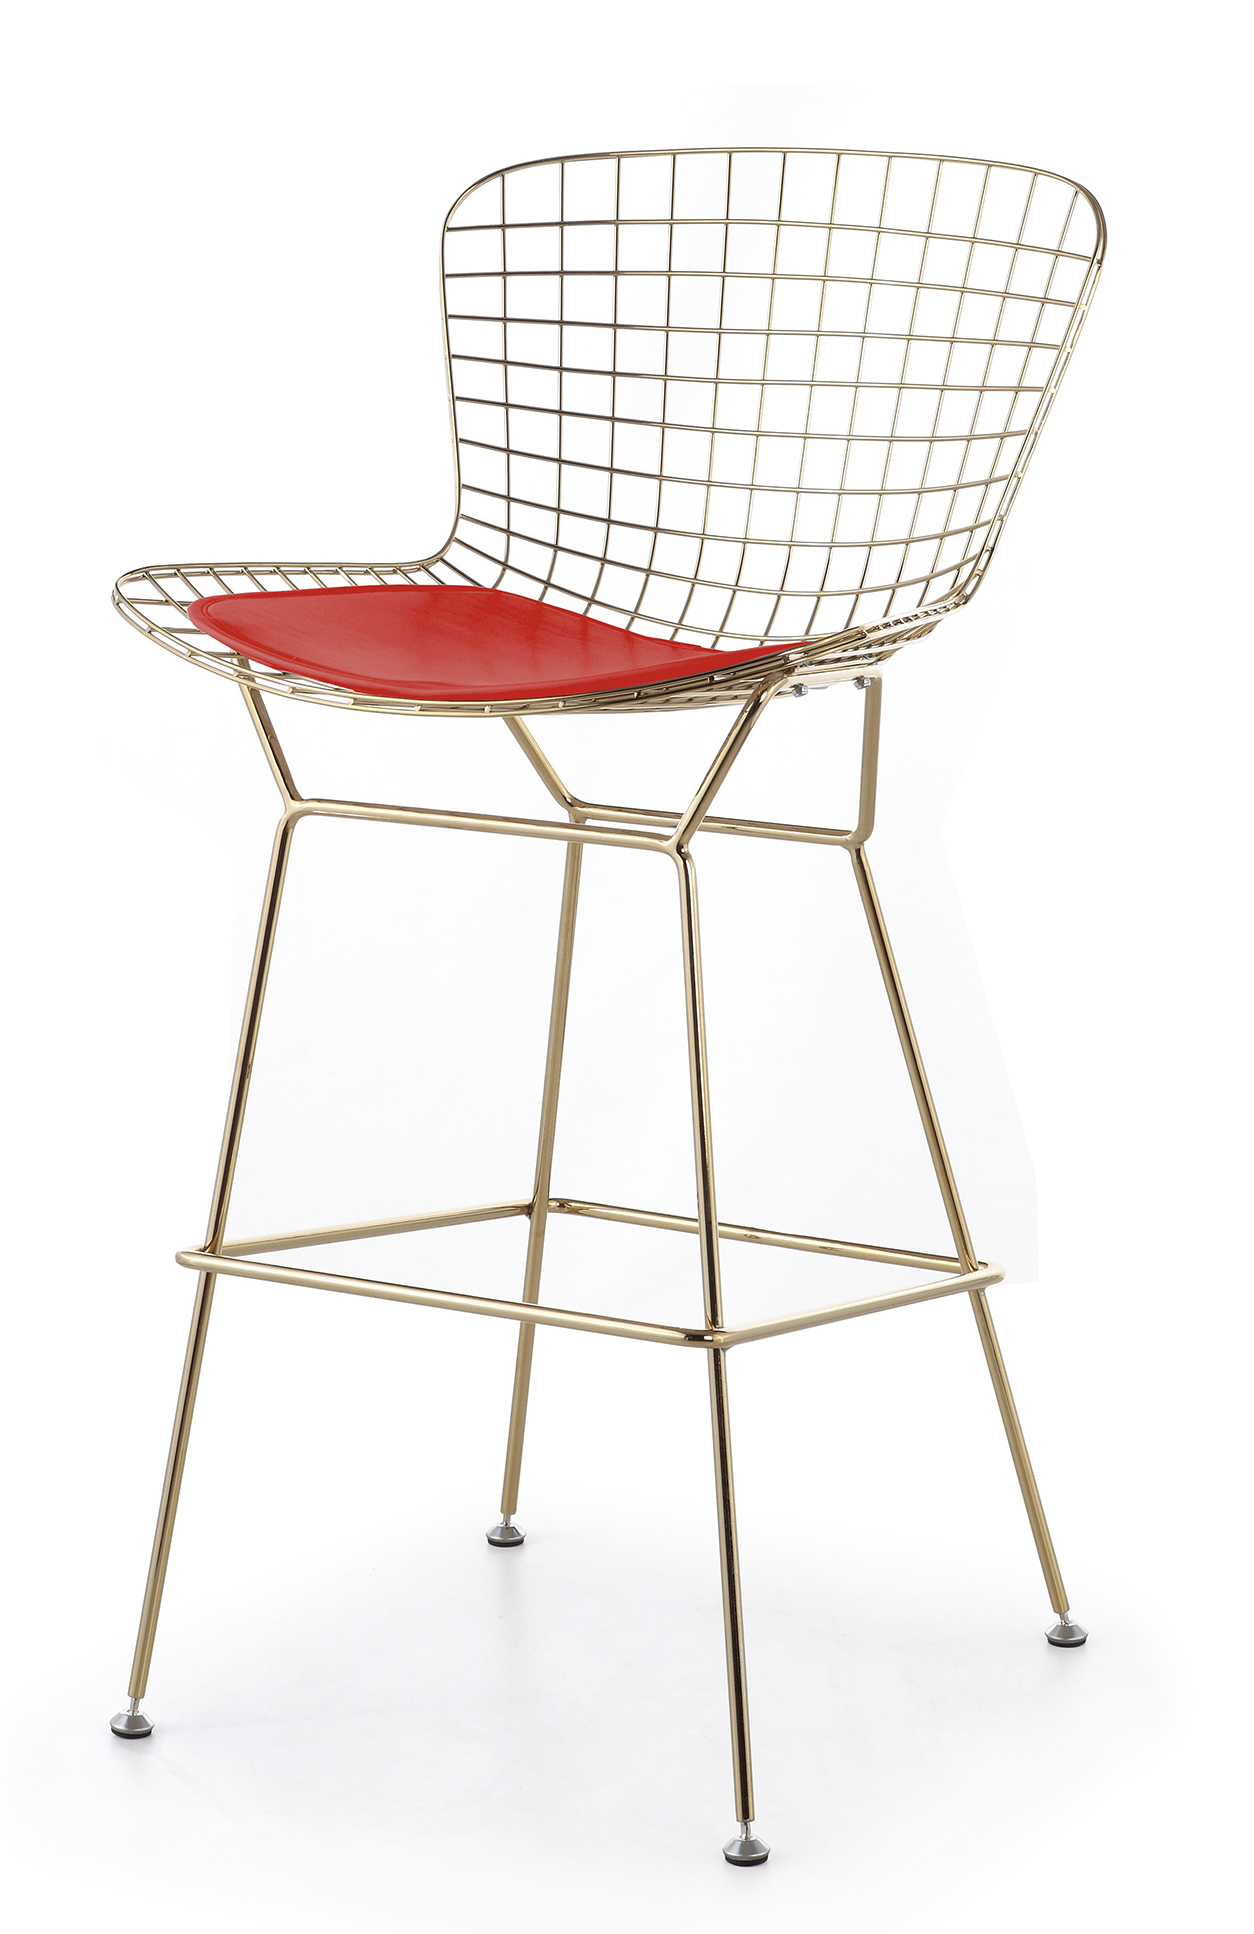 bertoia-red-pad.jpg